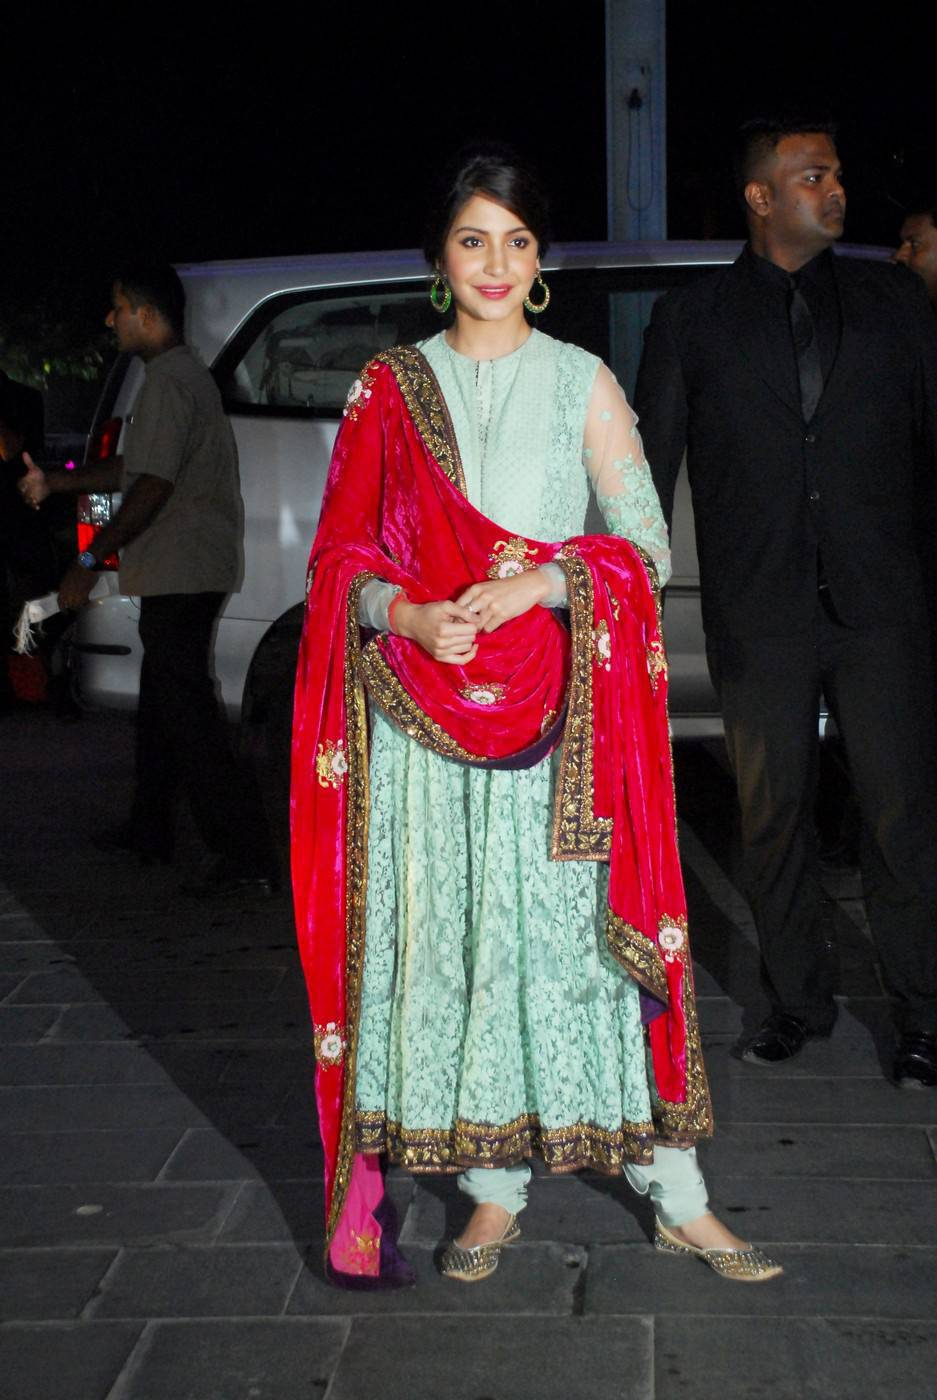 Indian Actress Anushka Sharma At Wedding Reception In Traditional Green Dress